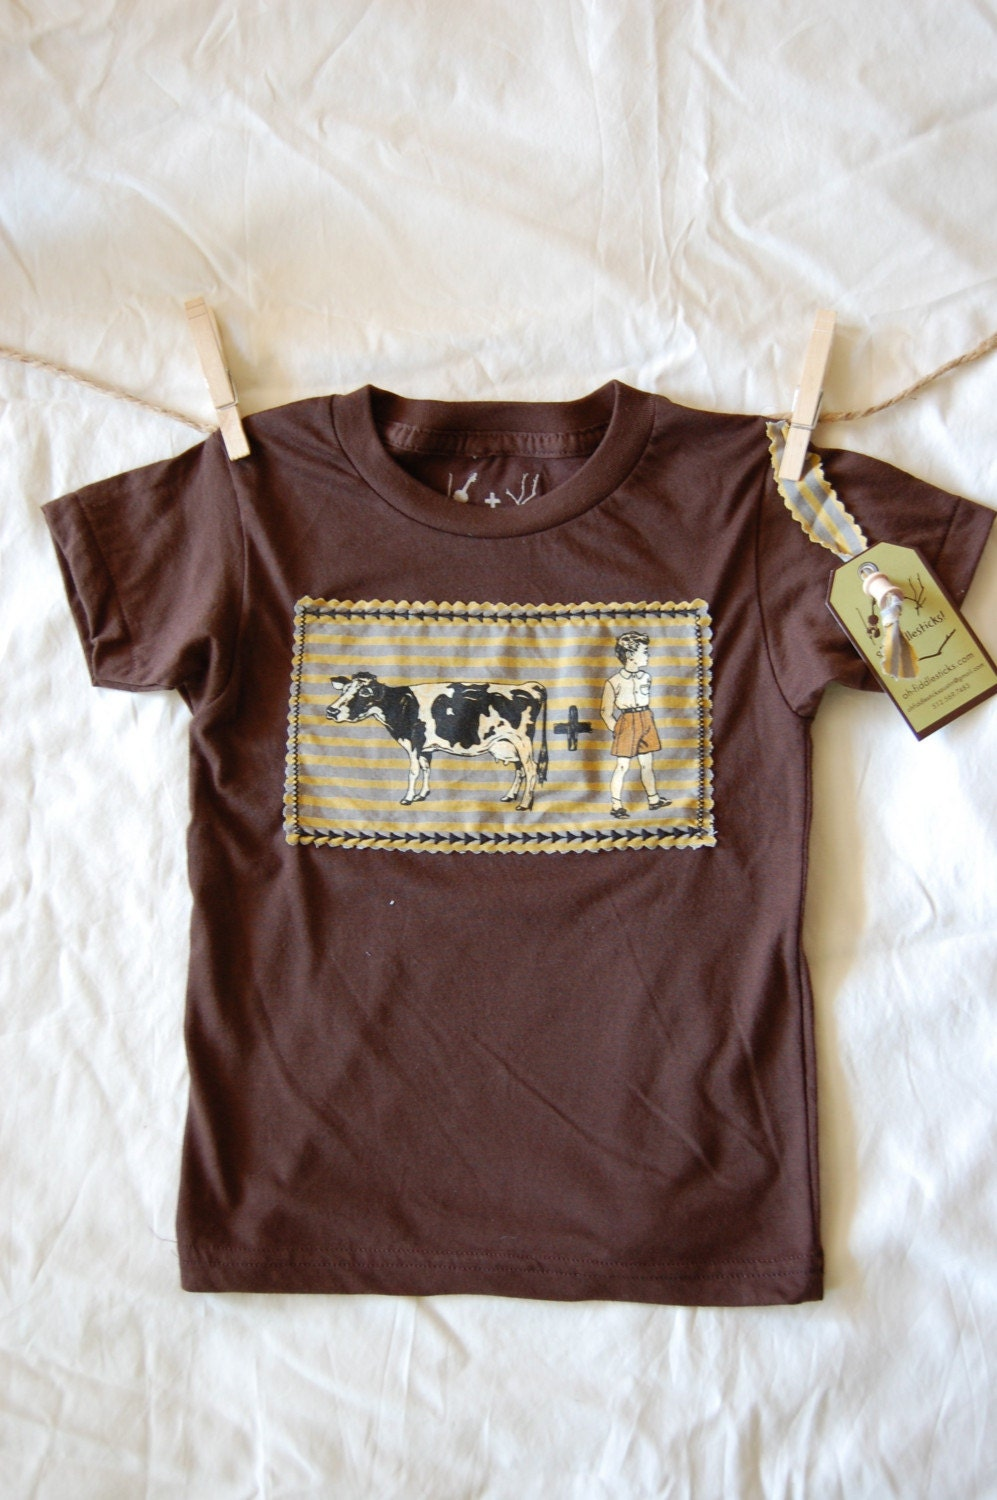 COWBOY children's shirt 12m, 18m, 2T, 4T perfect for RODEO time, also have COWGIRL for brother and sister shirts